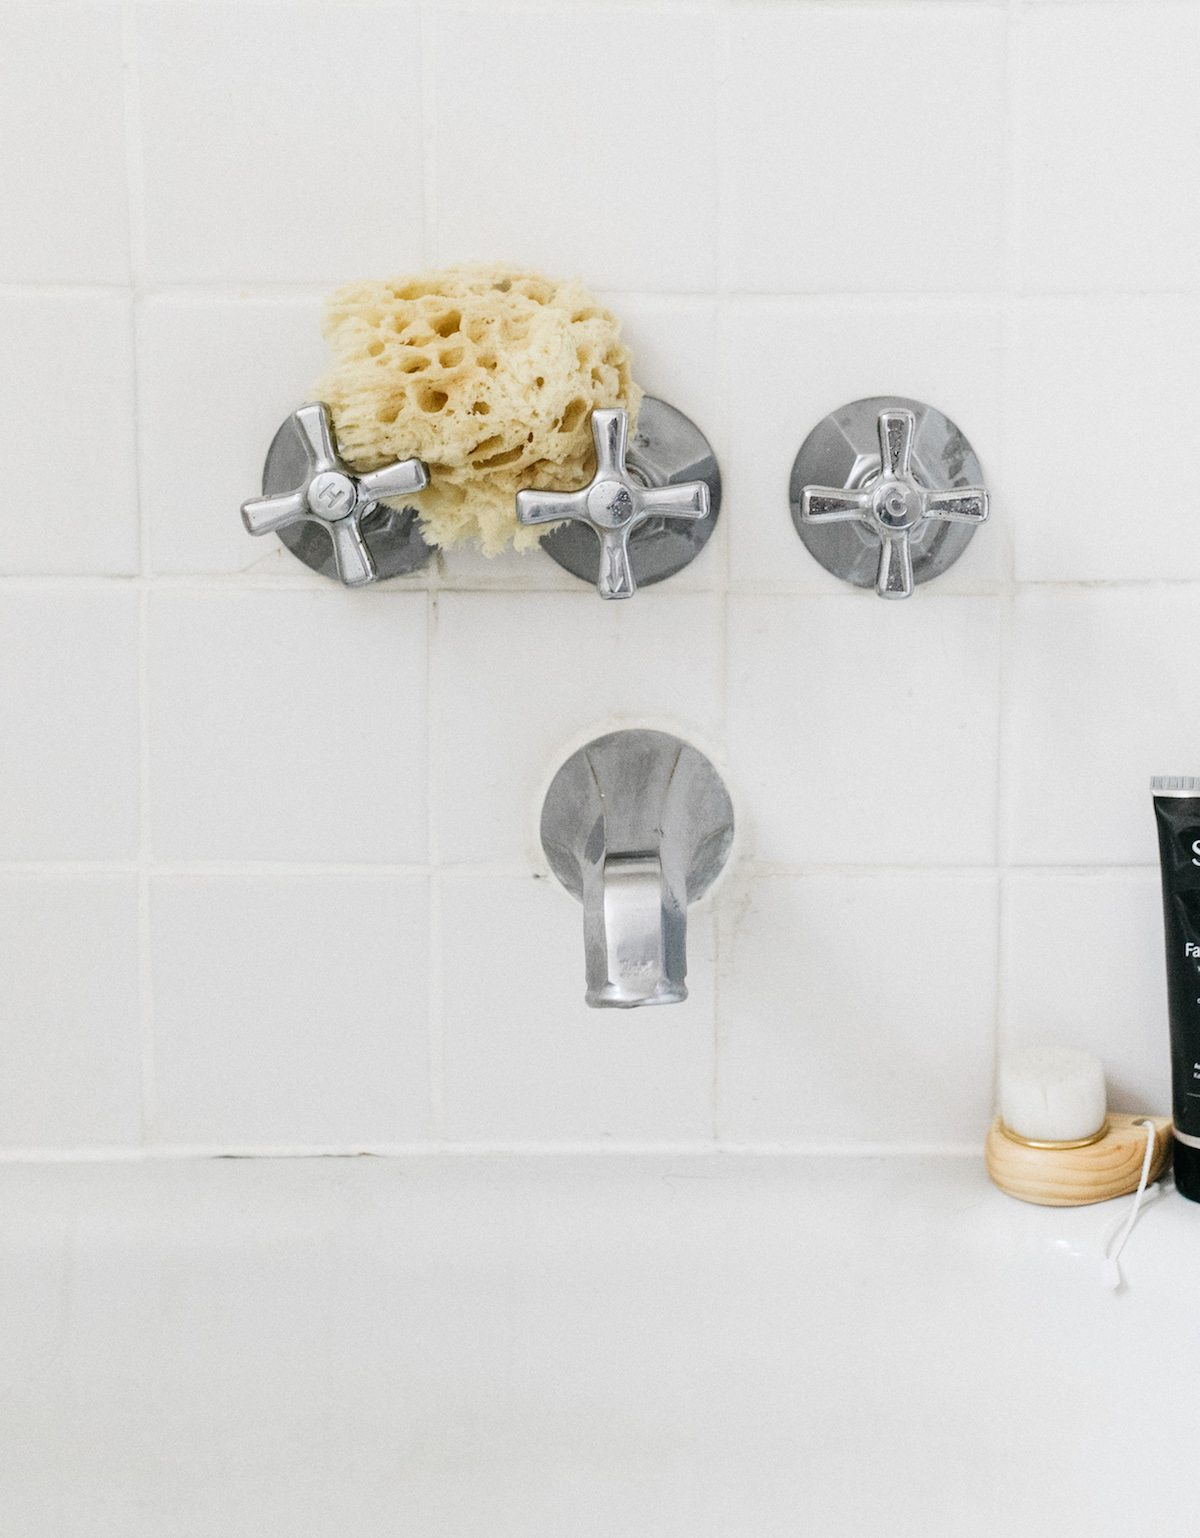 Submerged & Soothed: How to Create an At-Home Bath Ritual 52